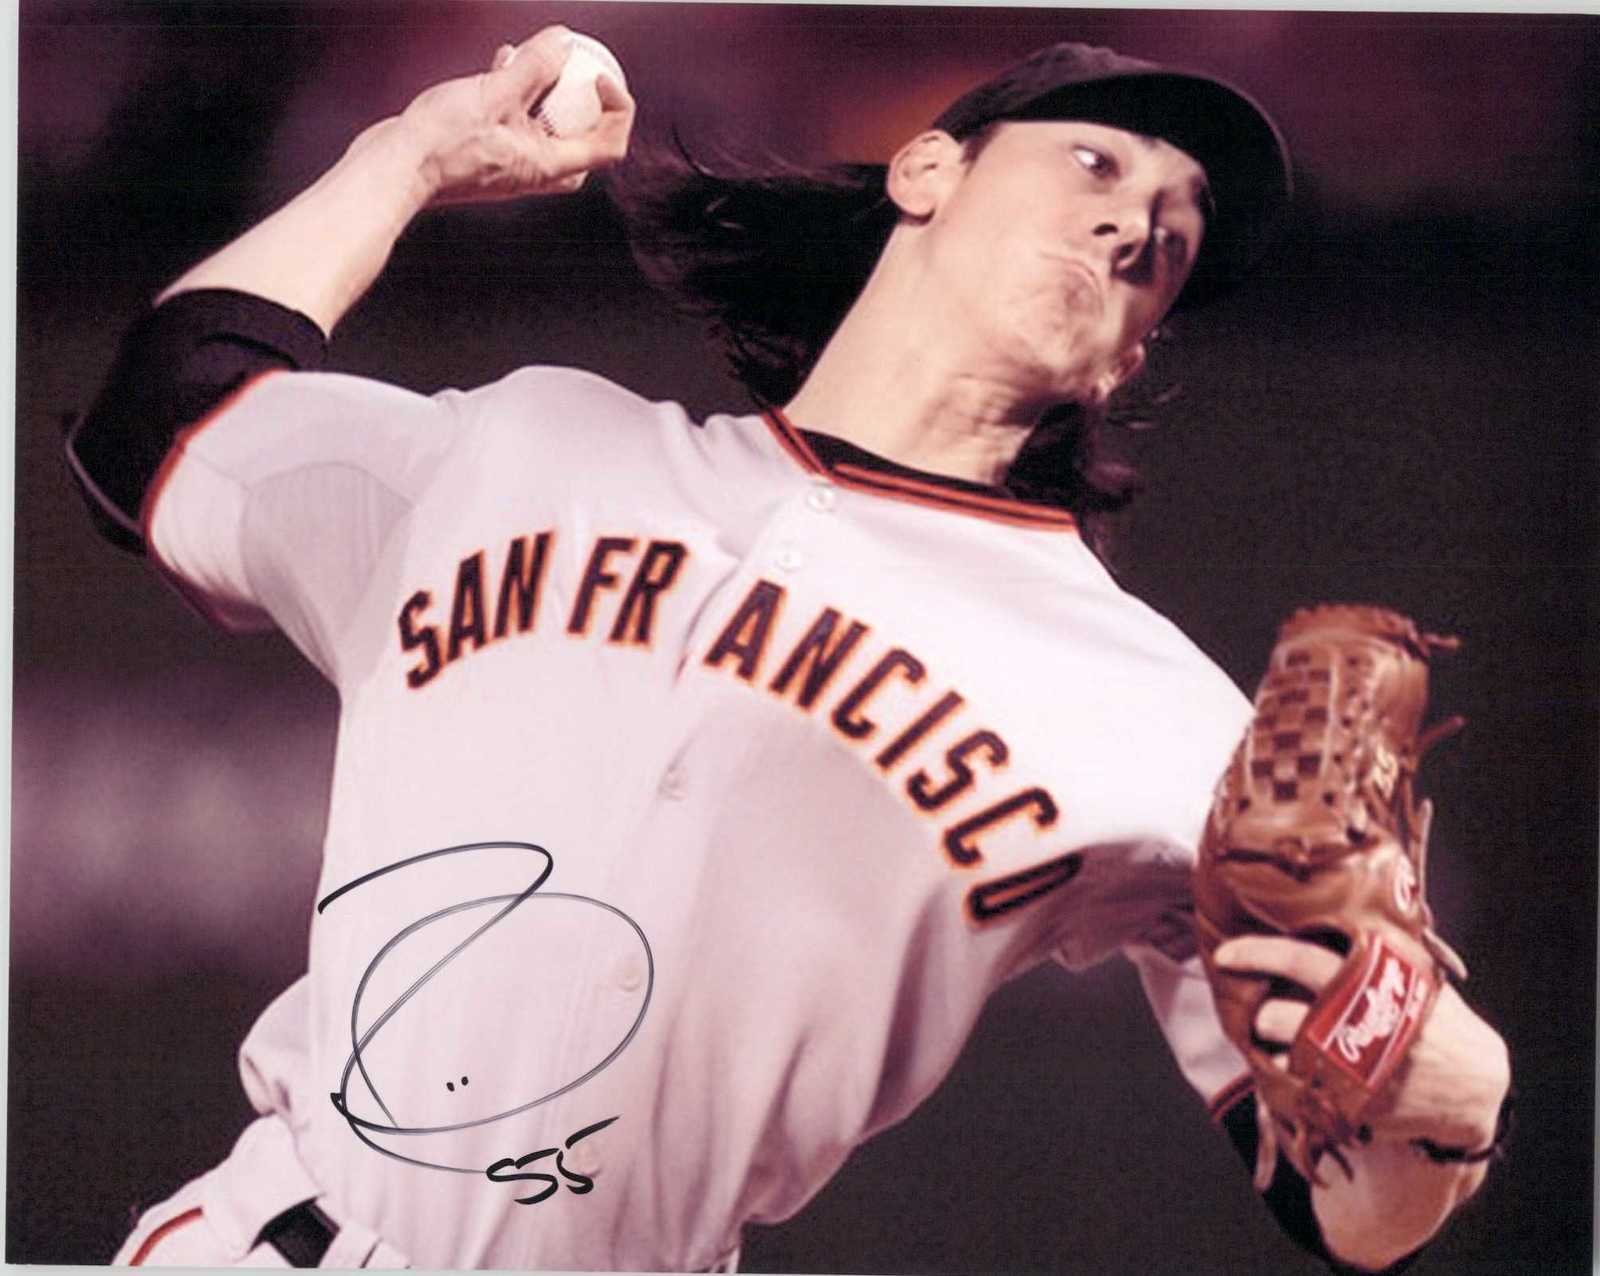 Primary image for Tim Lincecum Signed Autographed Glossy 8x10 Photo - San Francisco Giants